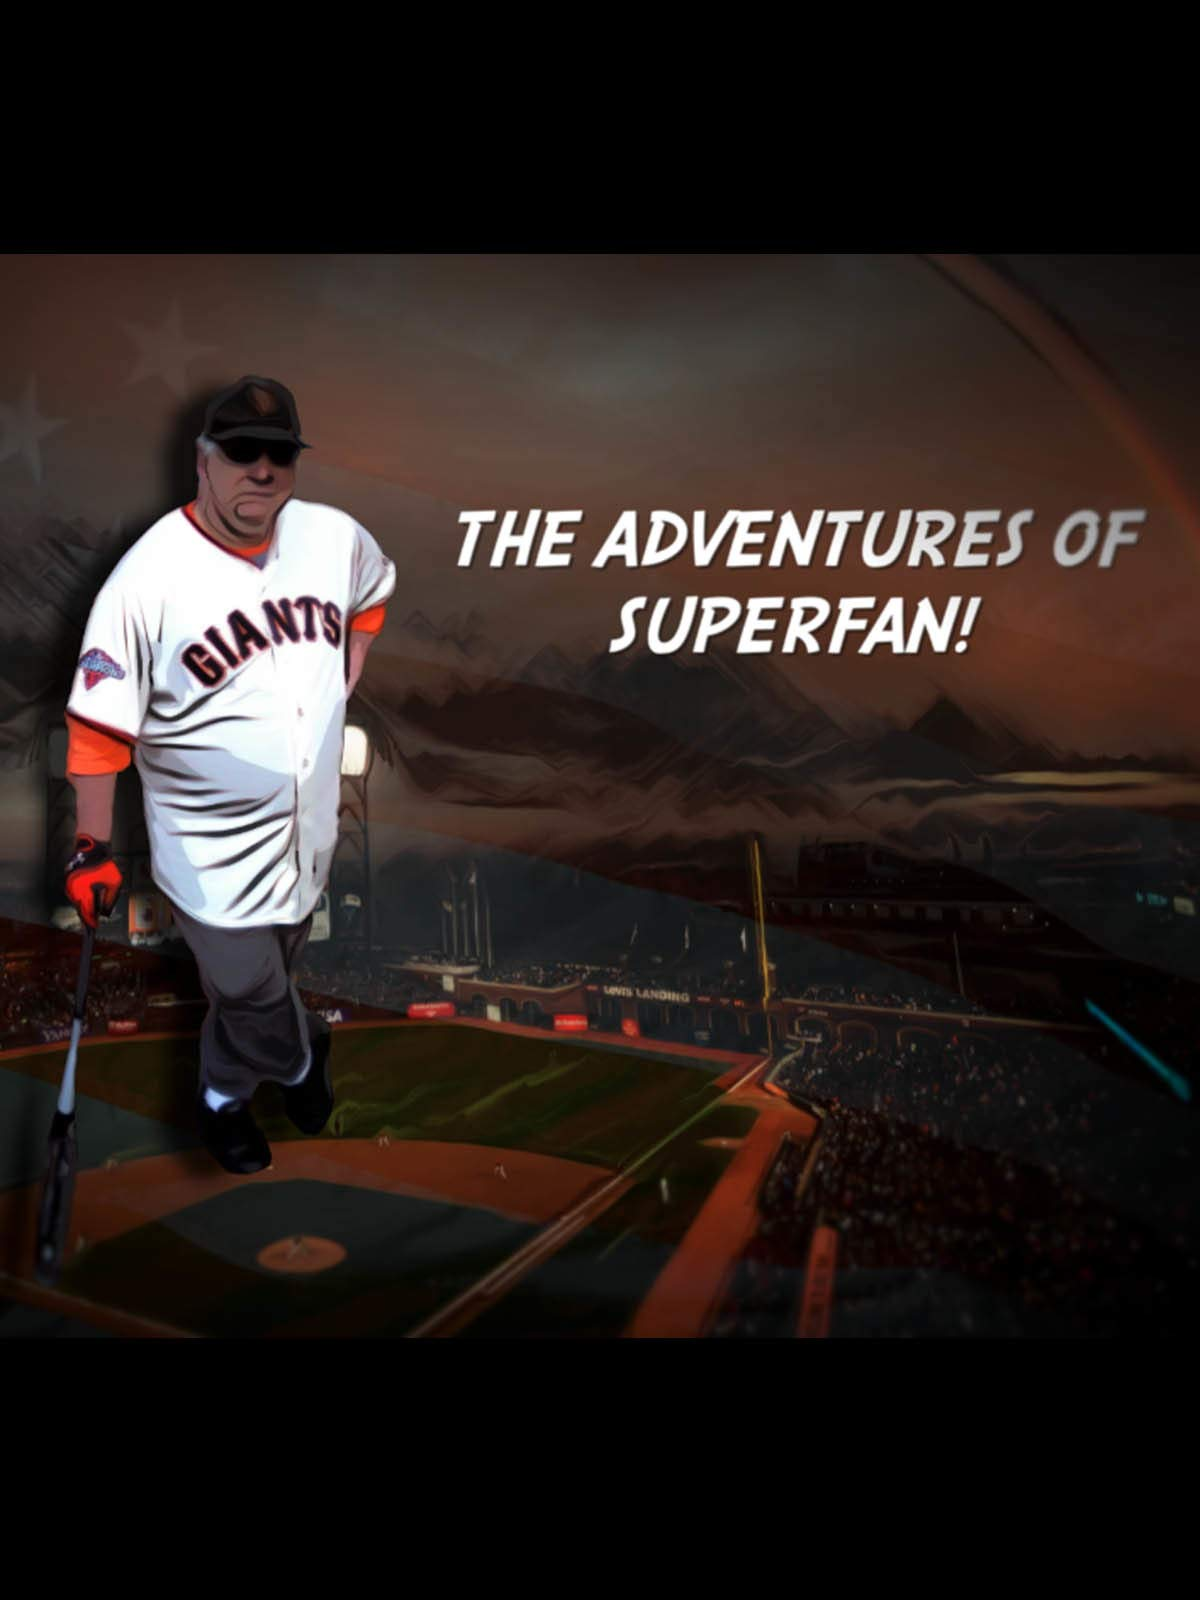 The Adventures of Superfan!